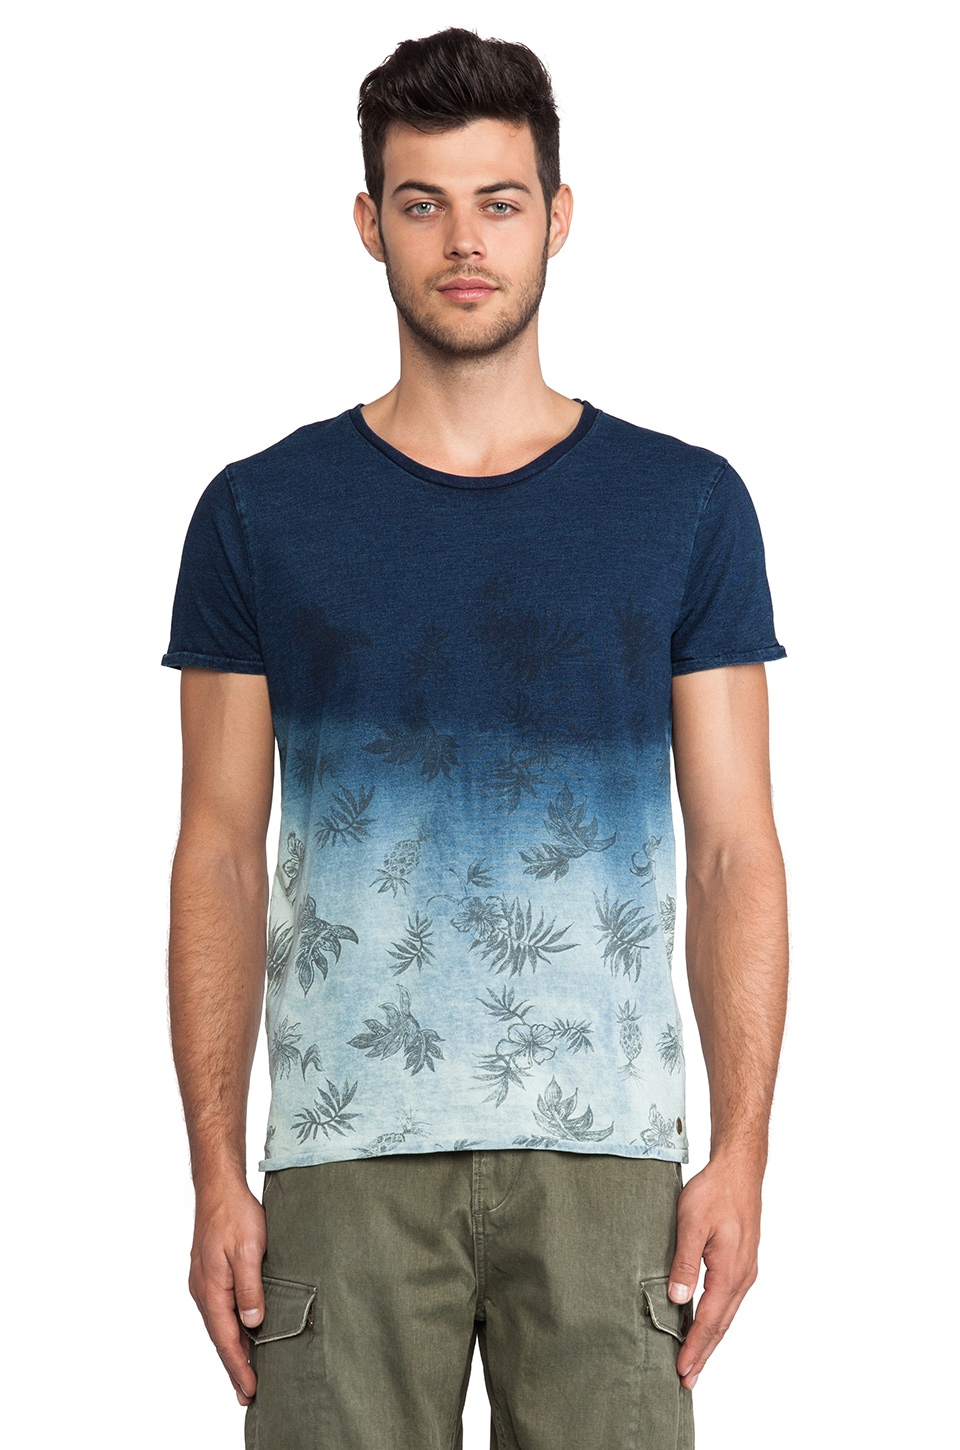 Scotch & Soda Indigo Tee in Blue/ Navy